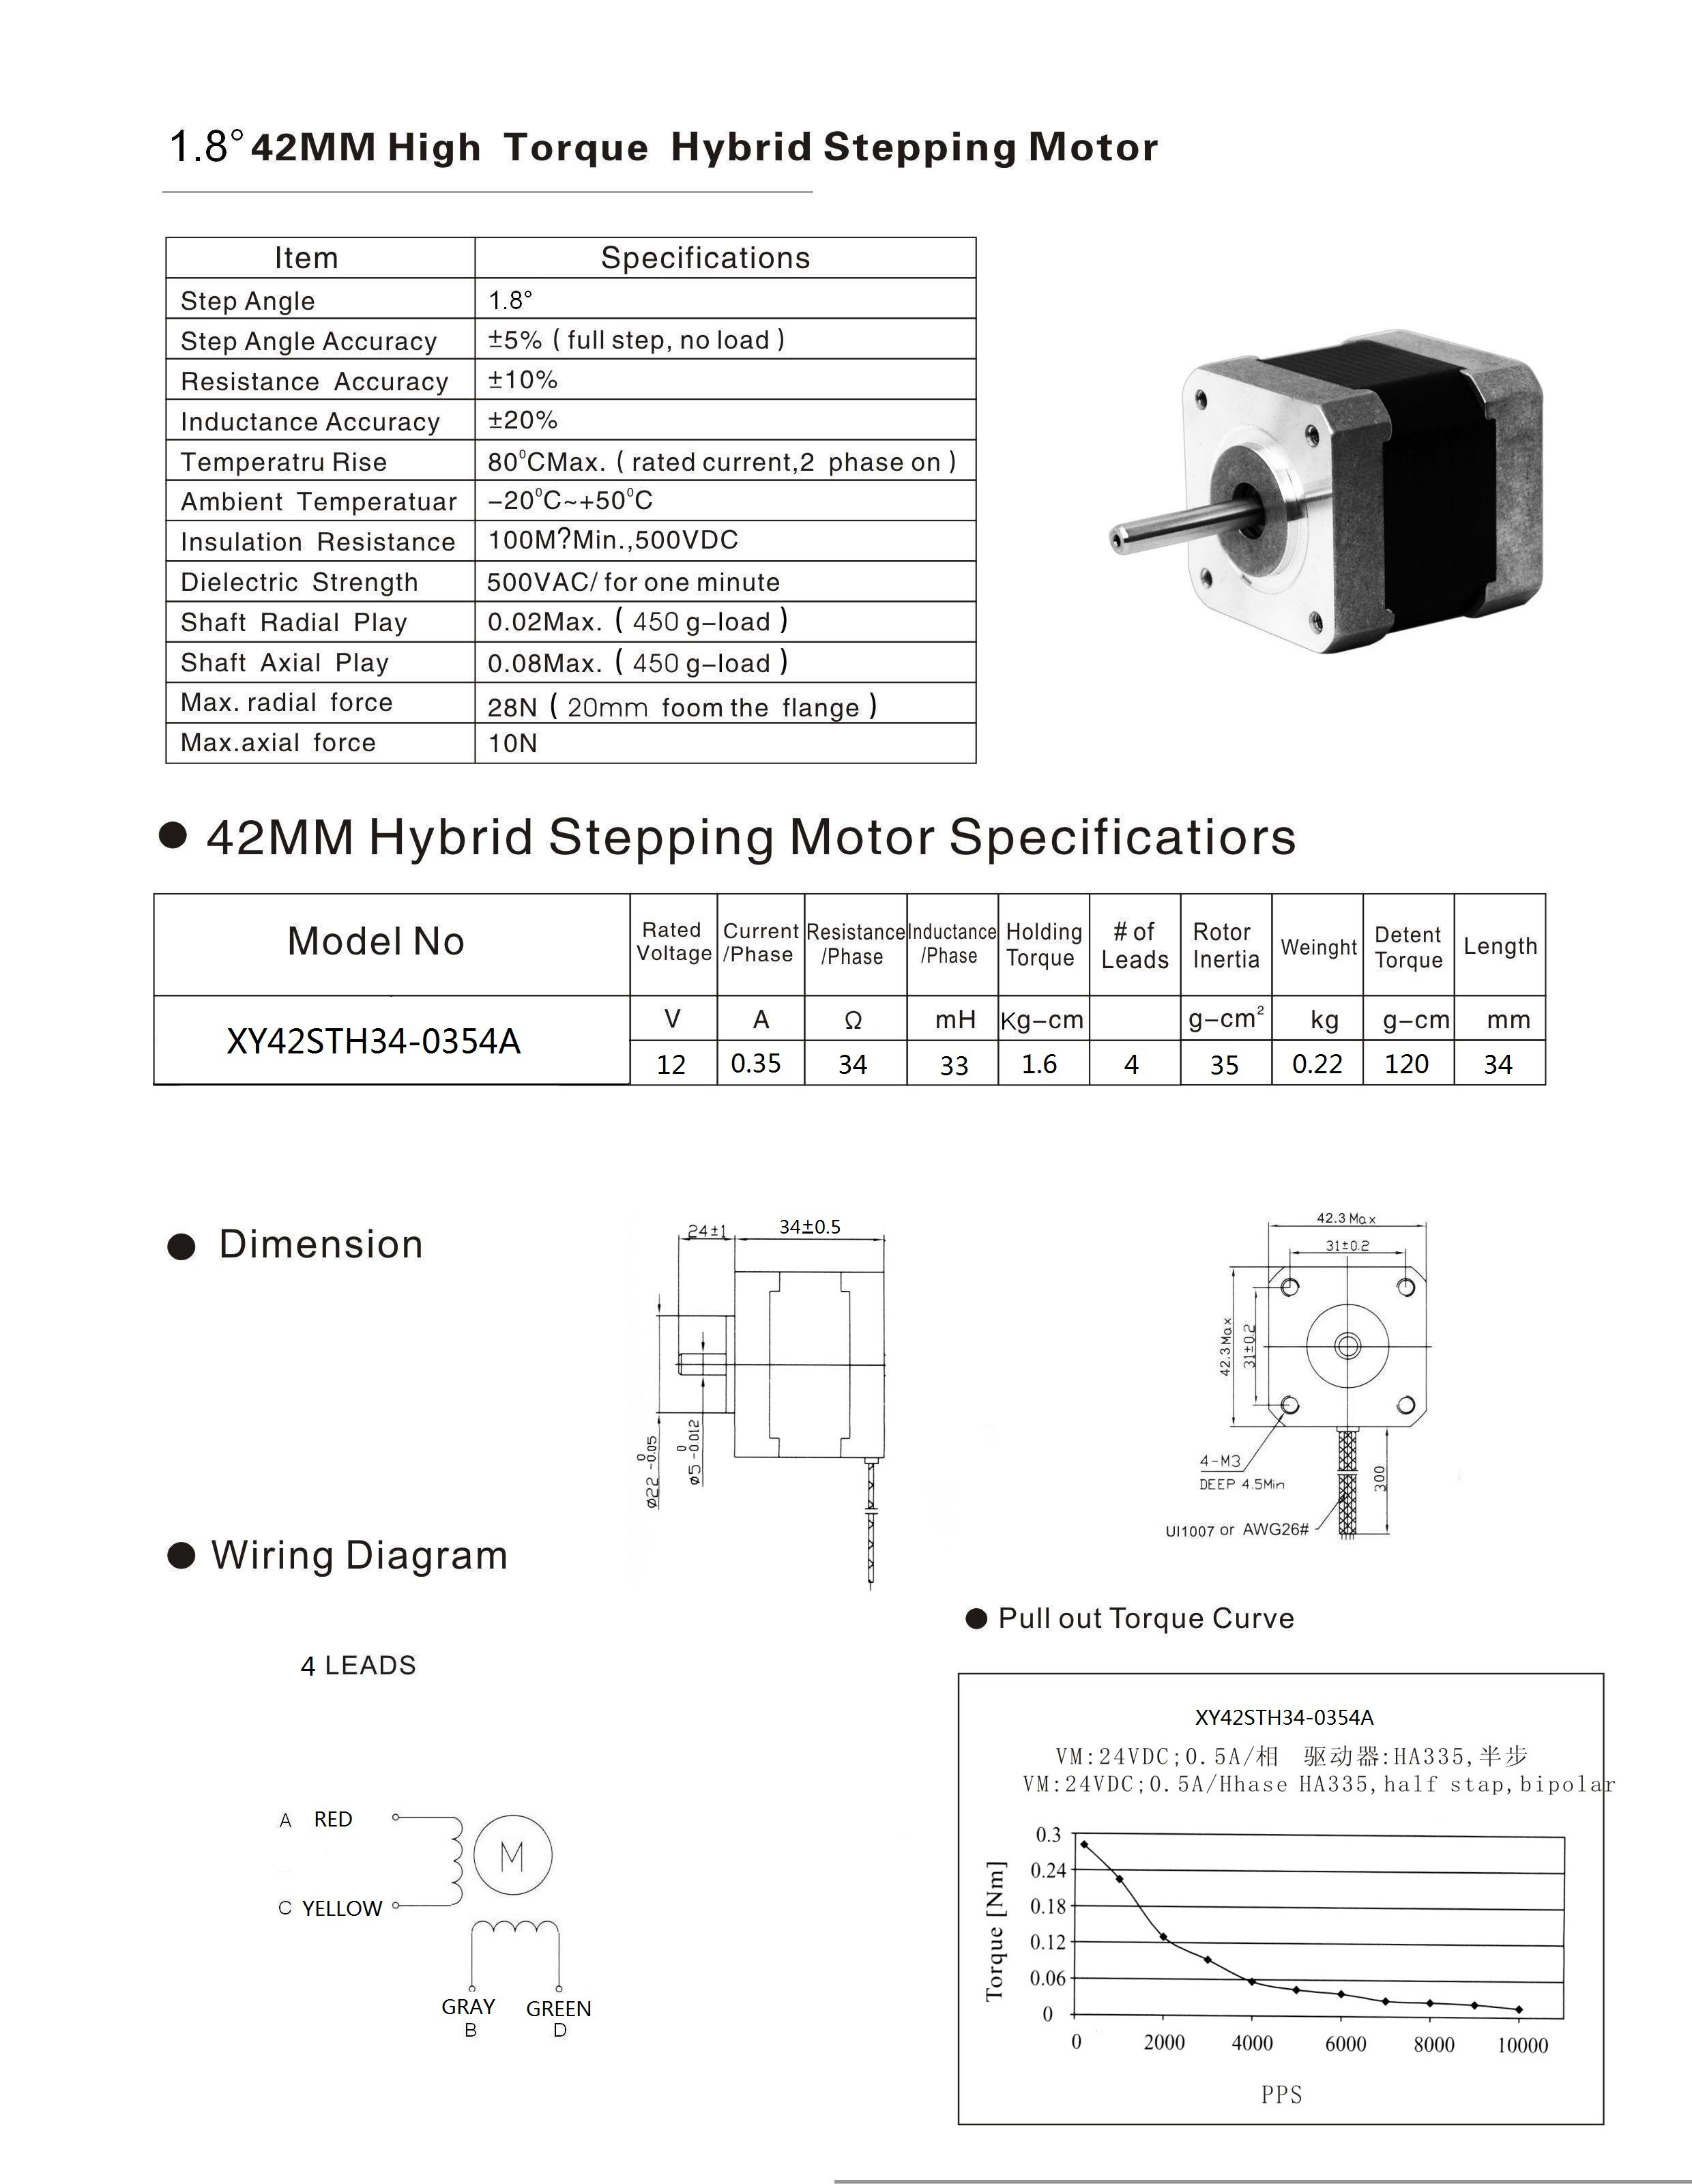 C140 A+datasheet stepper motor nema 17 size 200 steps rev, 12v 350ma id 324 nema 17 stepper motor wiring diagram at love-stories.co